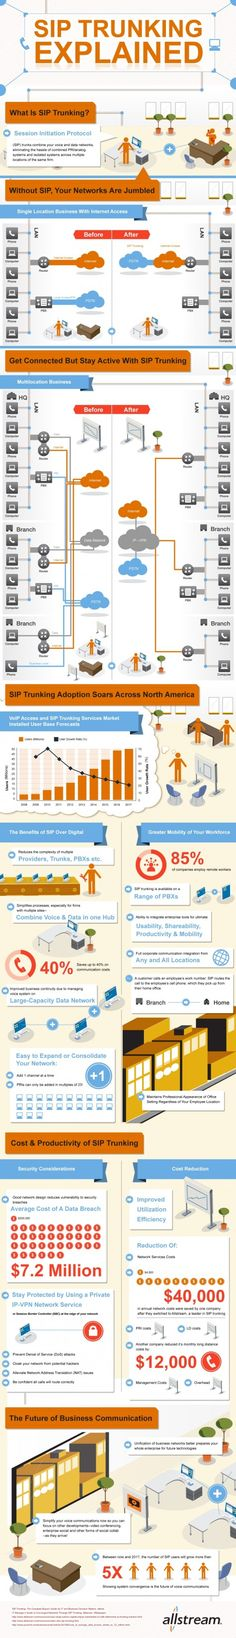 SIP Trunking infographic. What is SIP Trunking and why does your business need it? http://blog.allstream.com/infographic-sip-trunking-and-its-business-benefits-explained/